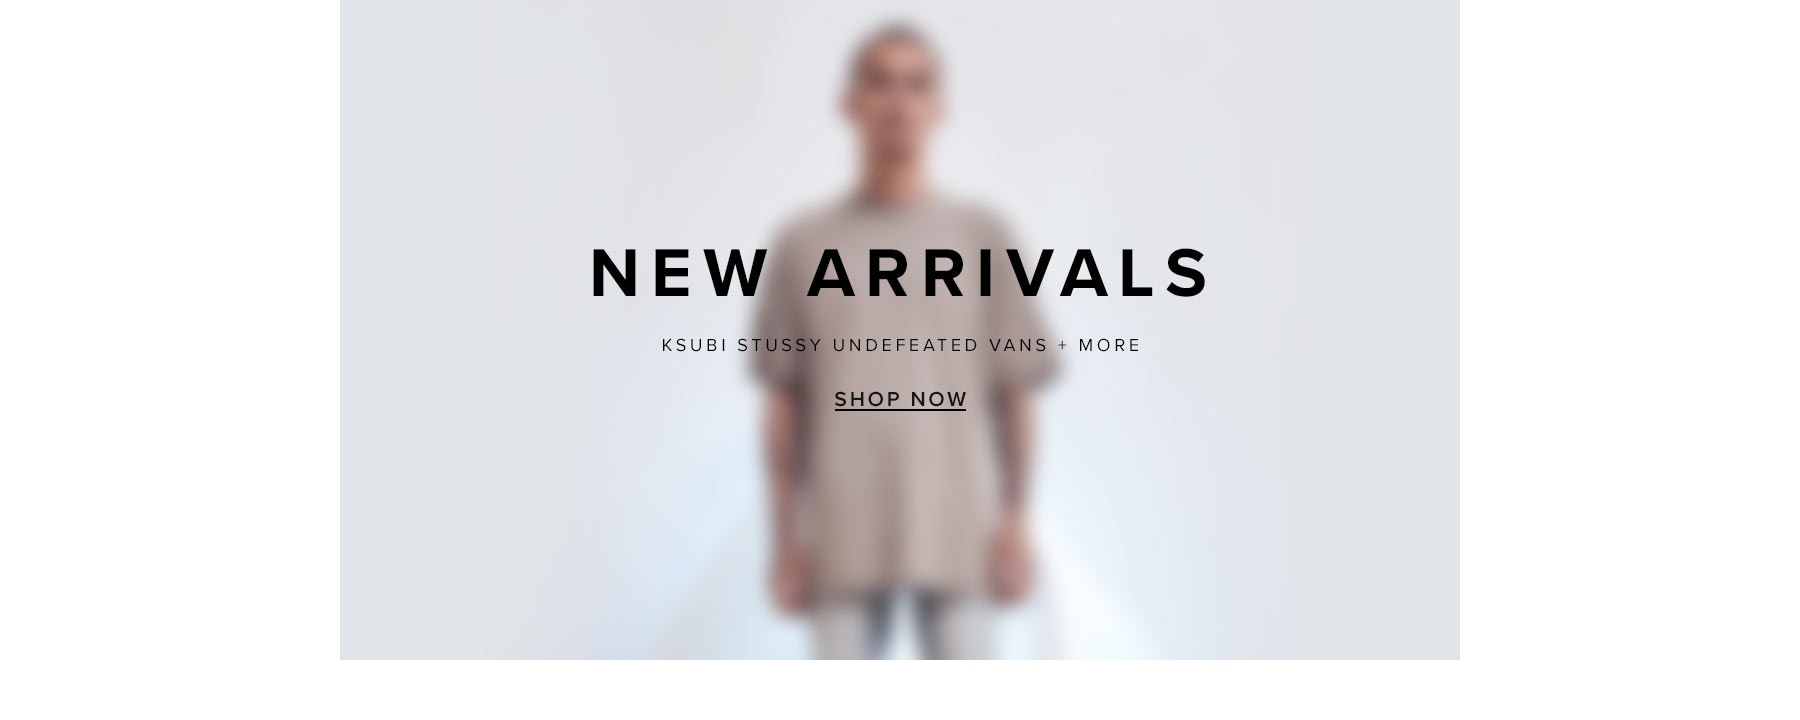 New Arrivals. Ksubi, Stussy, Undefeated, Vans + more. Shop New.